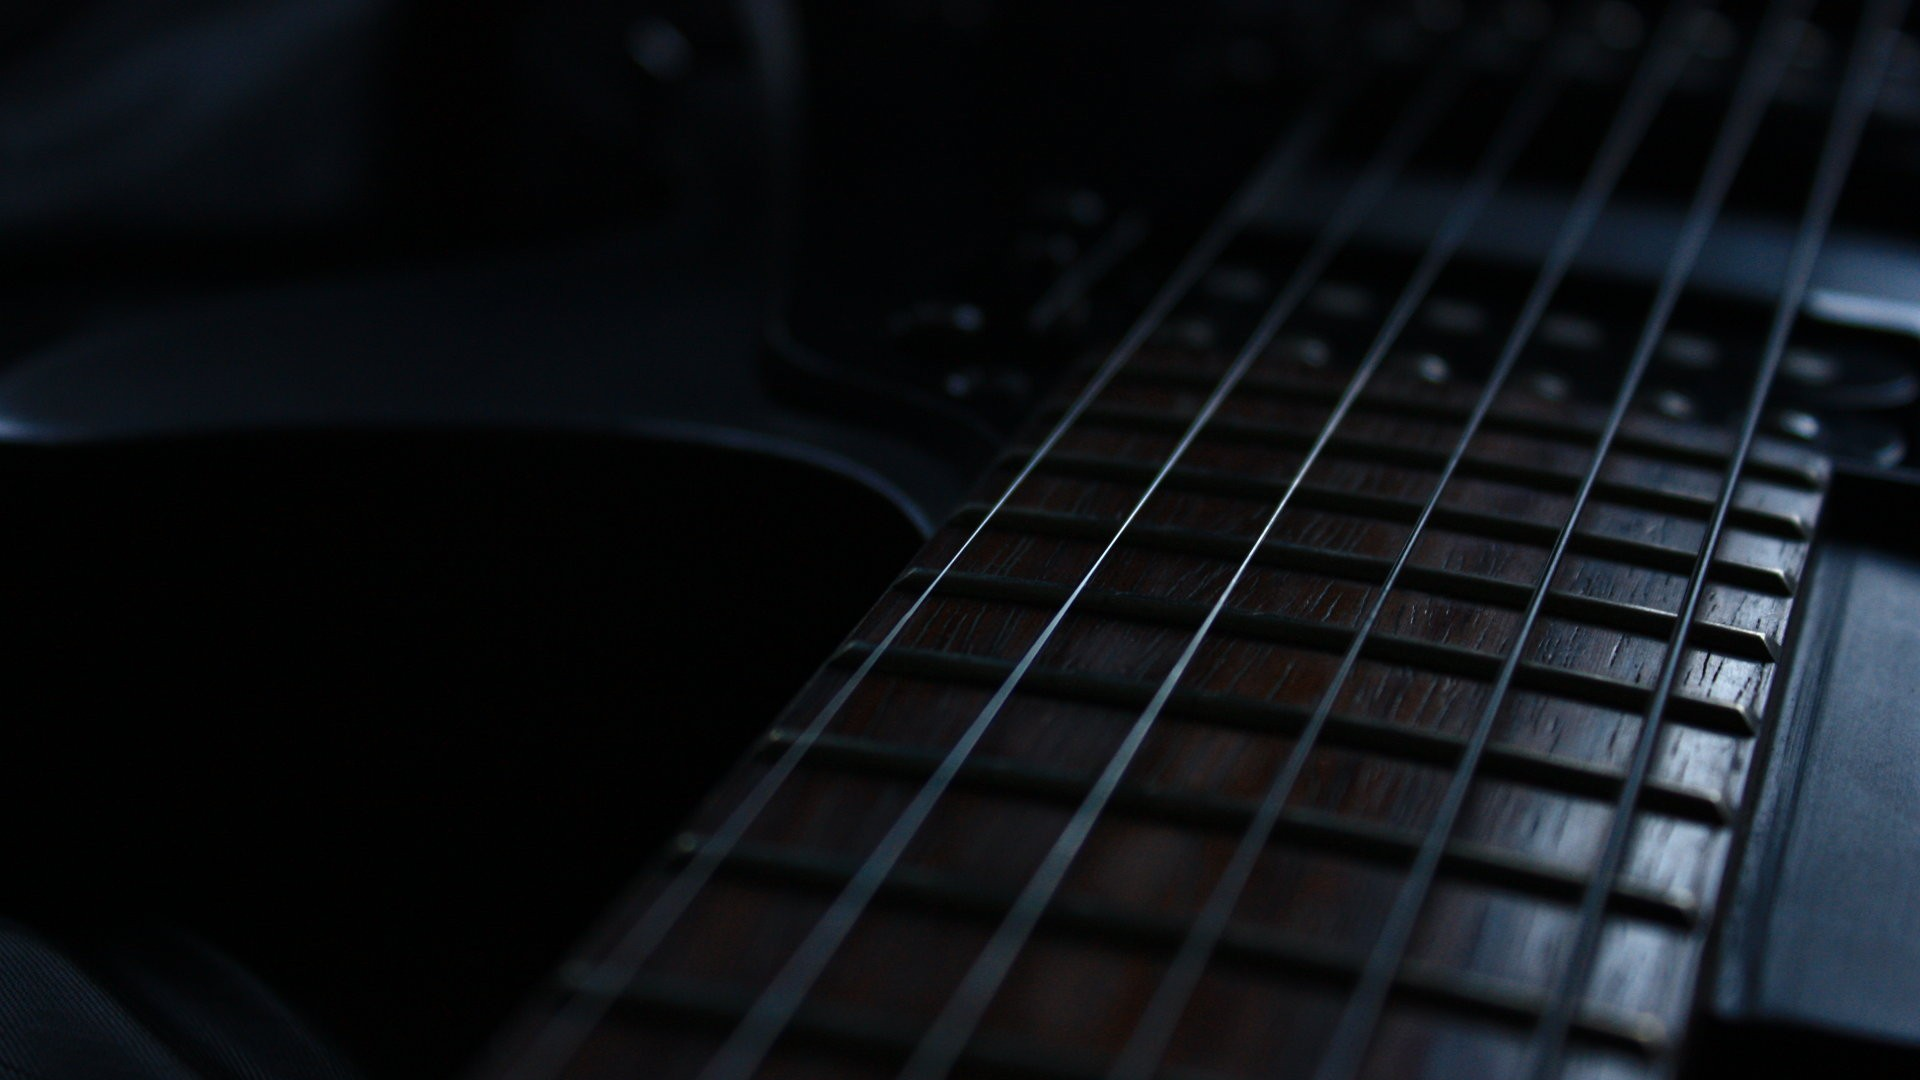 guitar strings wallpaper 148 1920x1080 px ~ pickywallpapers